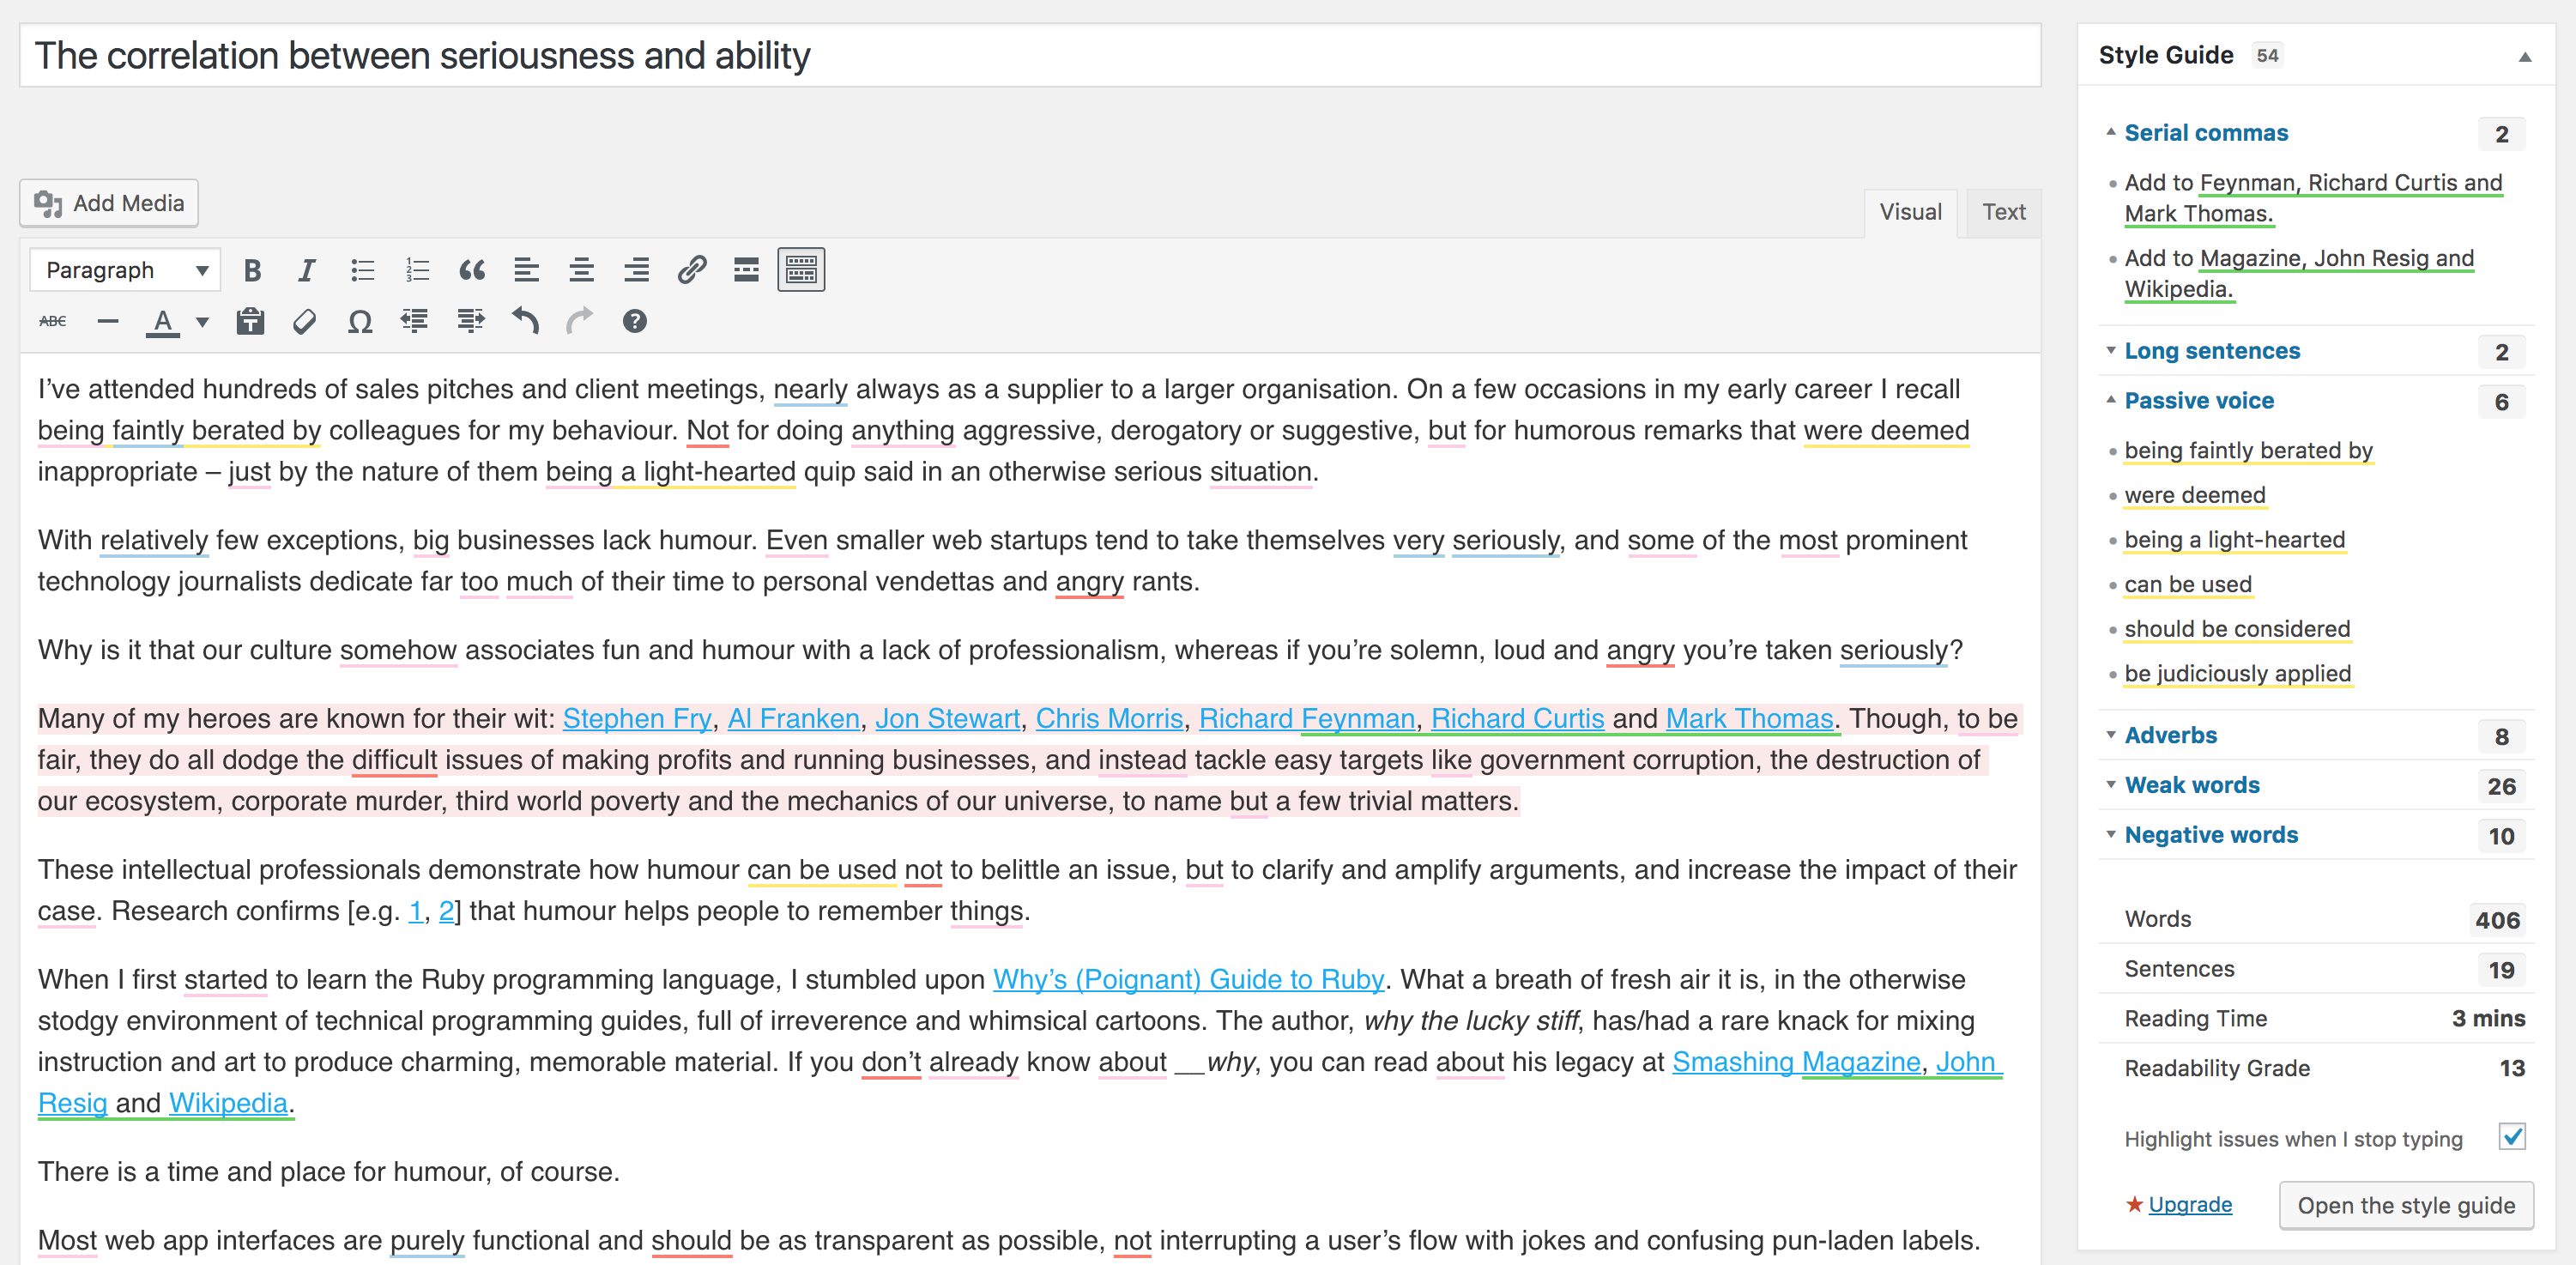 Another post with style guide violations highlighted, including long sentences in red.